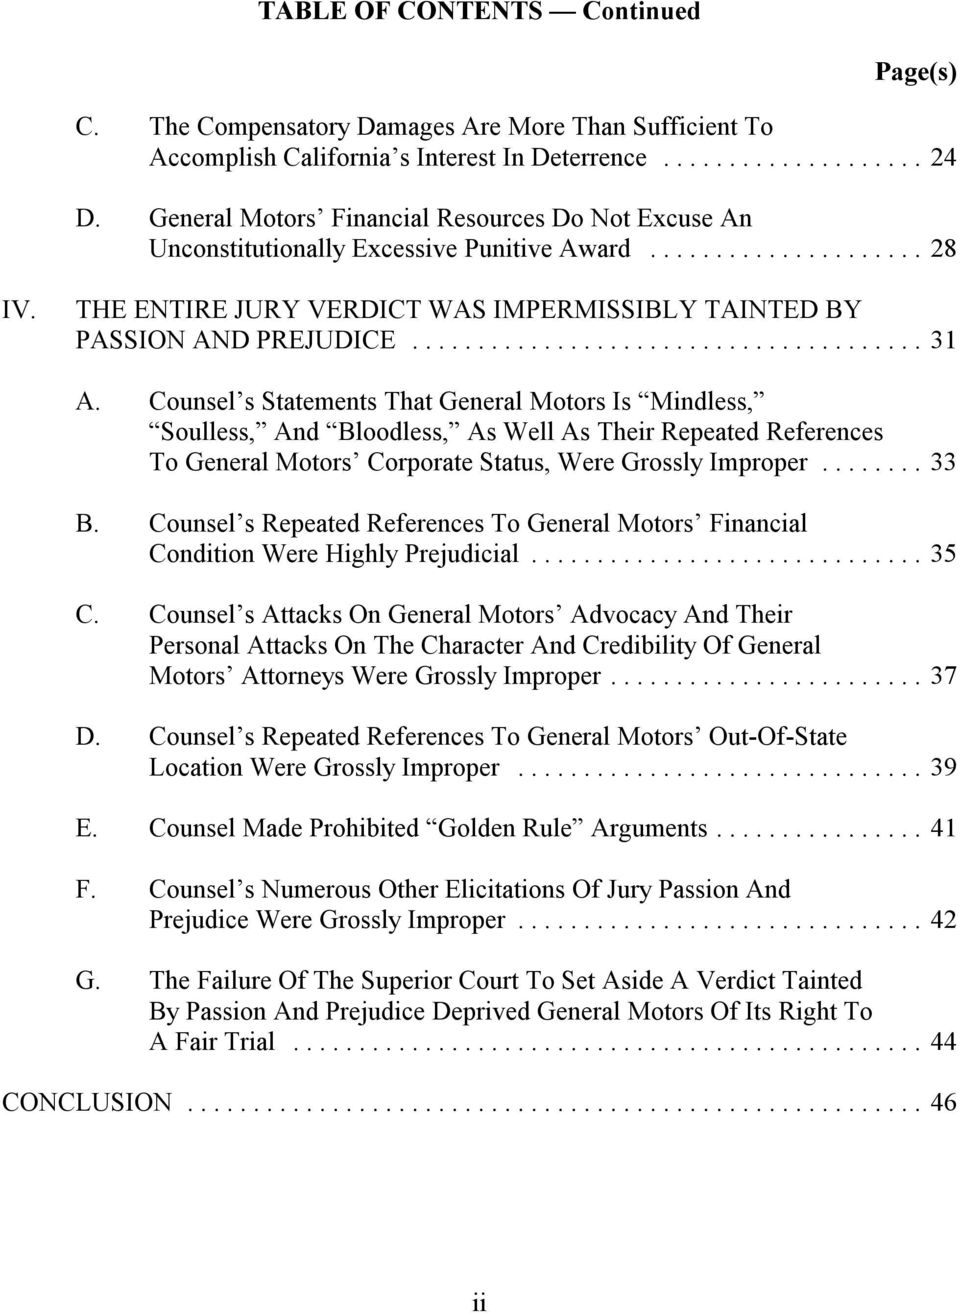 Counsel s Statements That General Motors Is Mindless, Soulless, And Bloodless, As Well As Their Repeated References To General Motors Corporate Status, Were Grossly Improper...33 B.